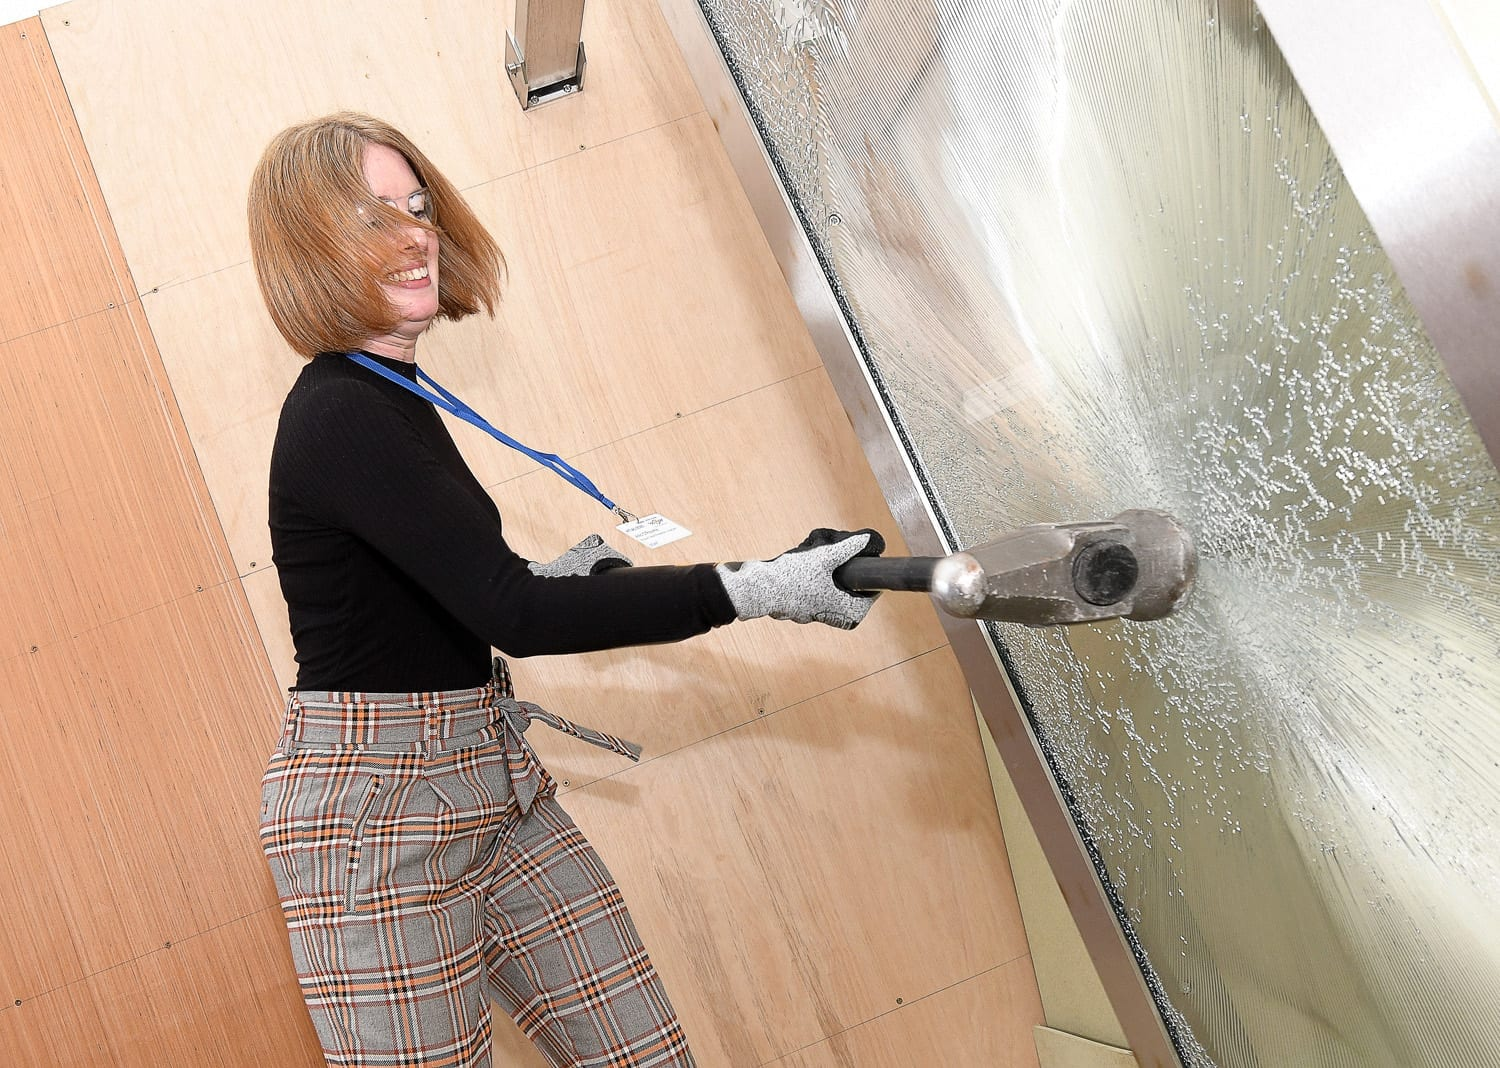 Woman in gloves and goggles hitting glass door with a sledge hammer